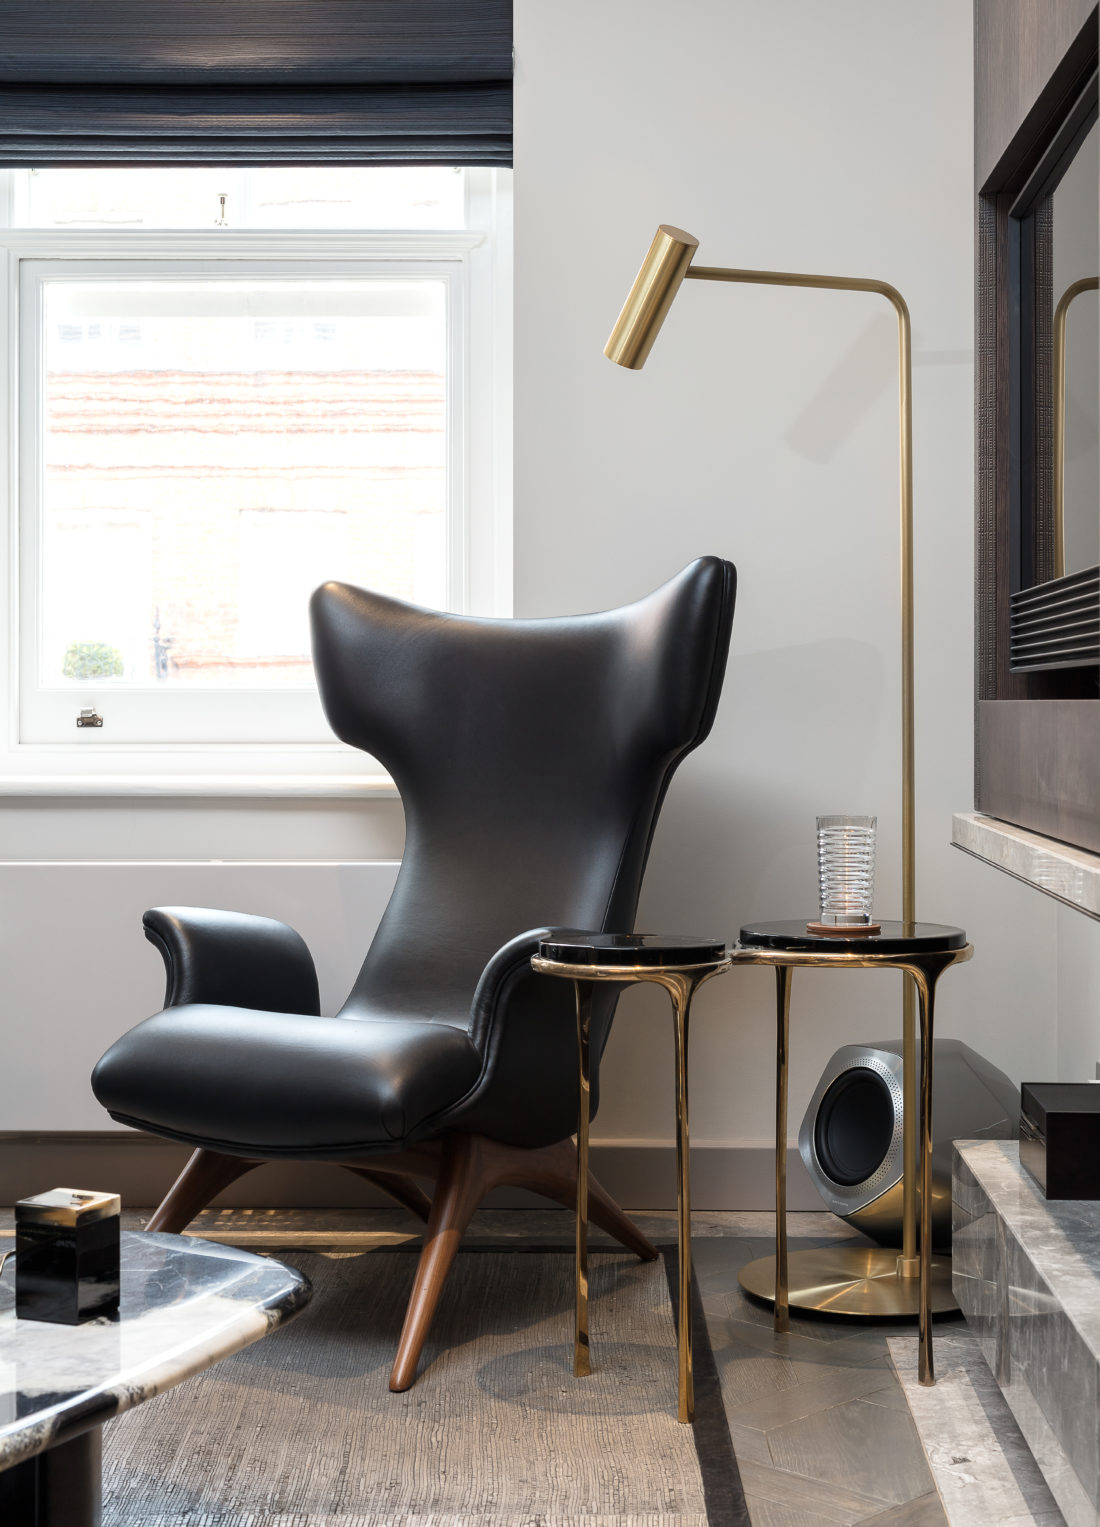 SHH An Internationally Acclaimed Interior Design Firm In UK_4 interior design firm in uk SHH: An Internationally Acclaimed Interior Design Firm In UK SHH An Internationally Acclaimed Interior Design Firm In UK 4